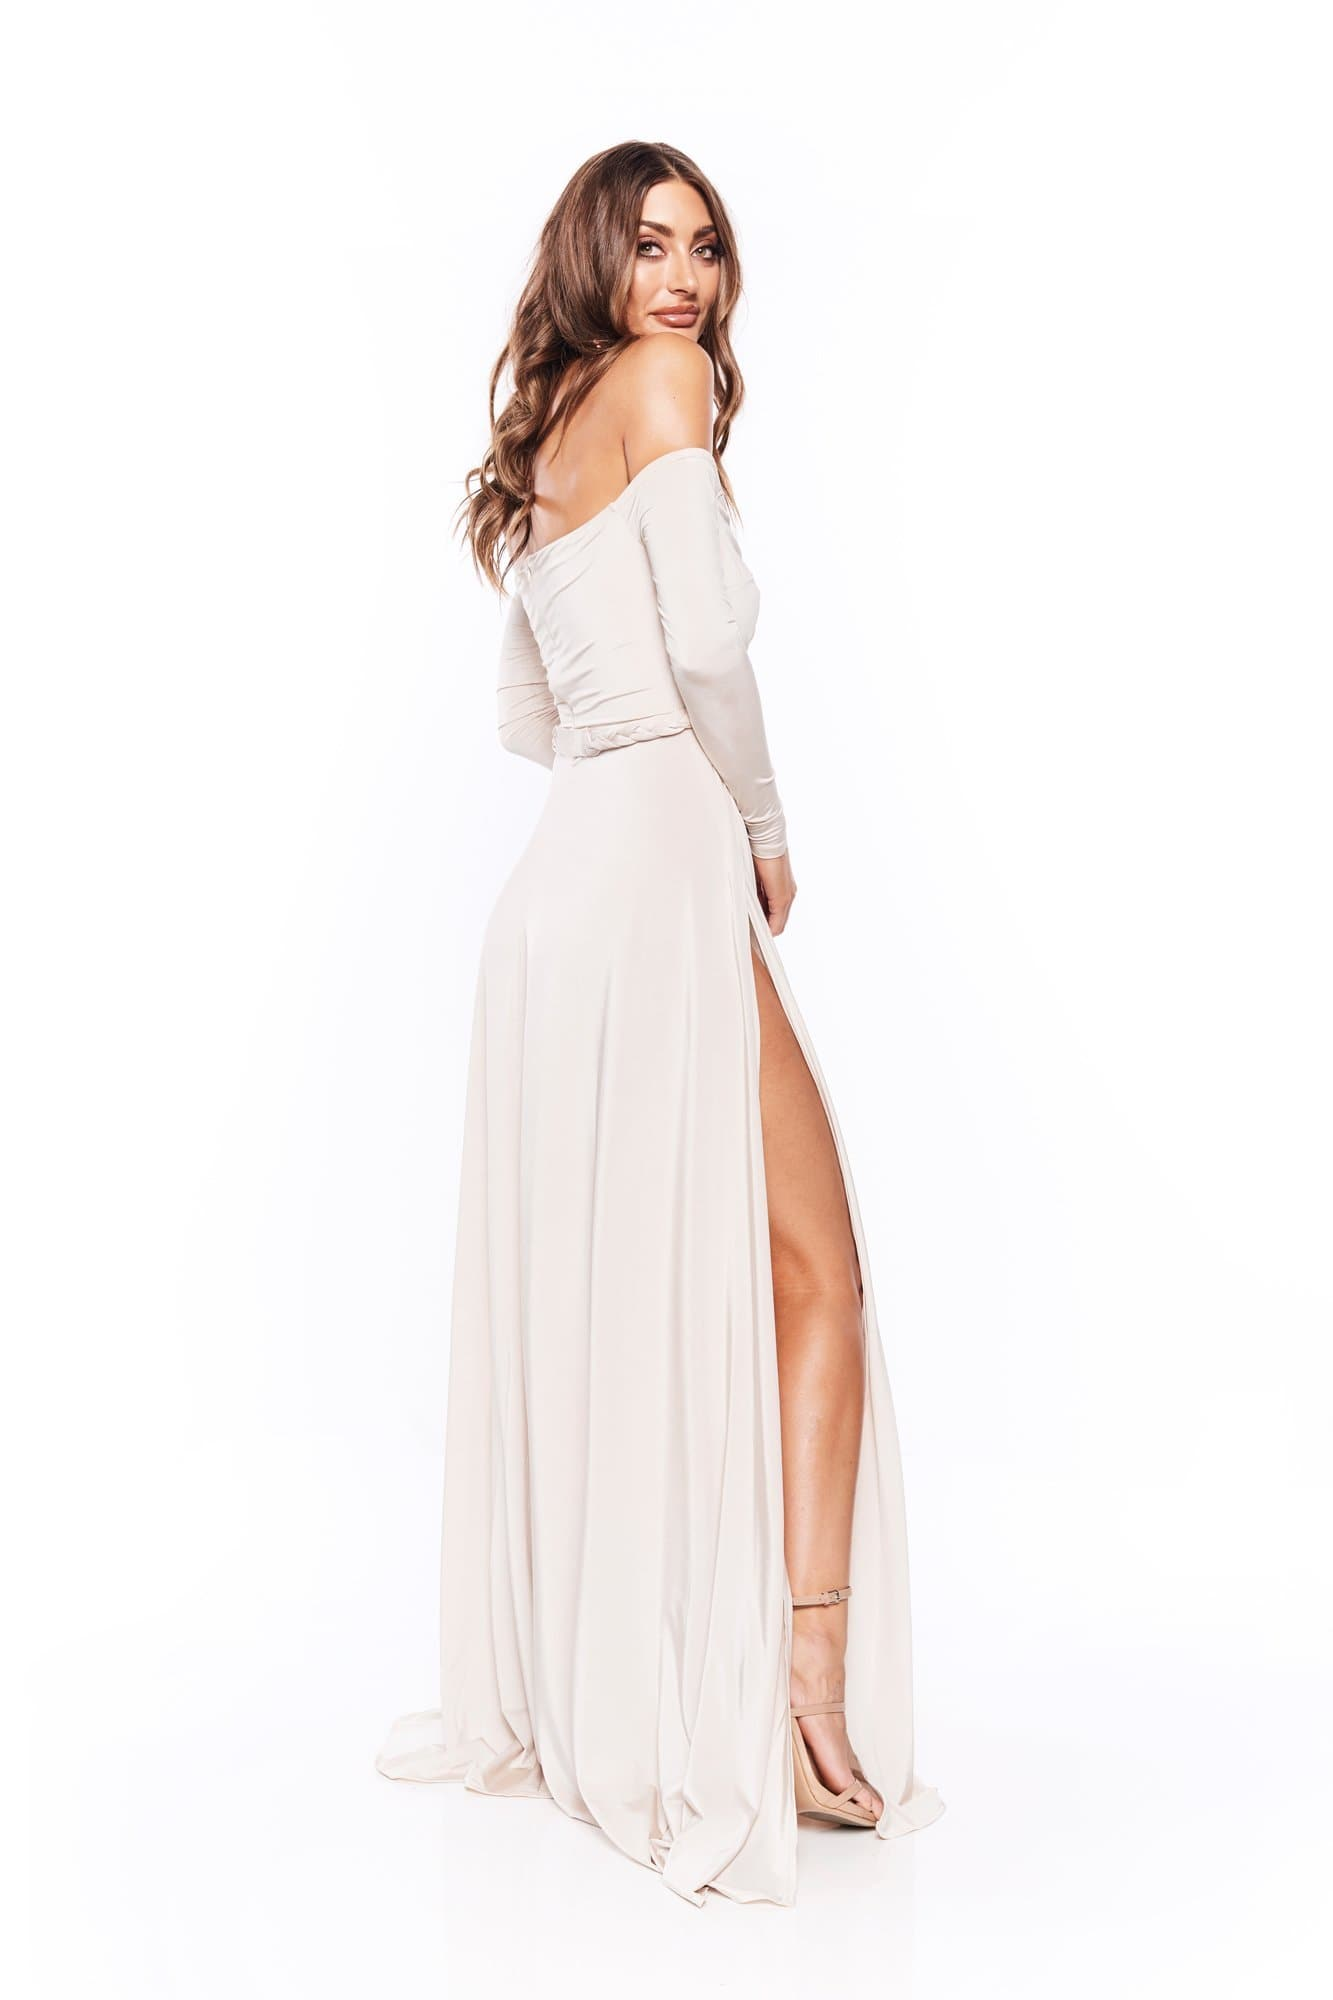 Parnella - Oyster Off Shoulder Long Sleeve Jersey Gown with Slit